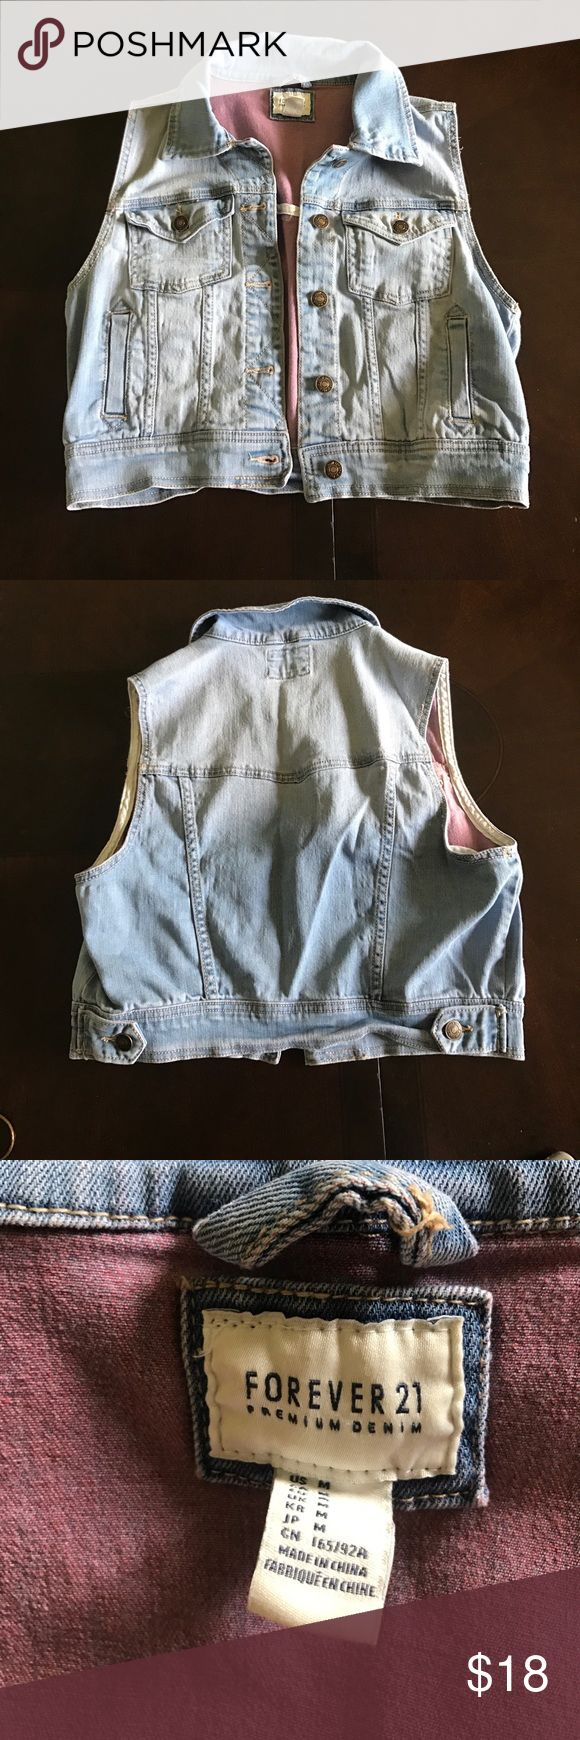 Forever 21 Jean Jacket Sleeveless Jean Jacket Worn maybe once. Super cute with summer dress or outfit. This jacket could also been worn year-round with a long sleeve during cold months!Due to high shipping cost this would be a great item to bundle with other items in my closet! Forever 21 Jackets & Coats Jean Jackets